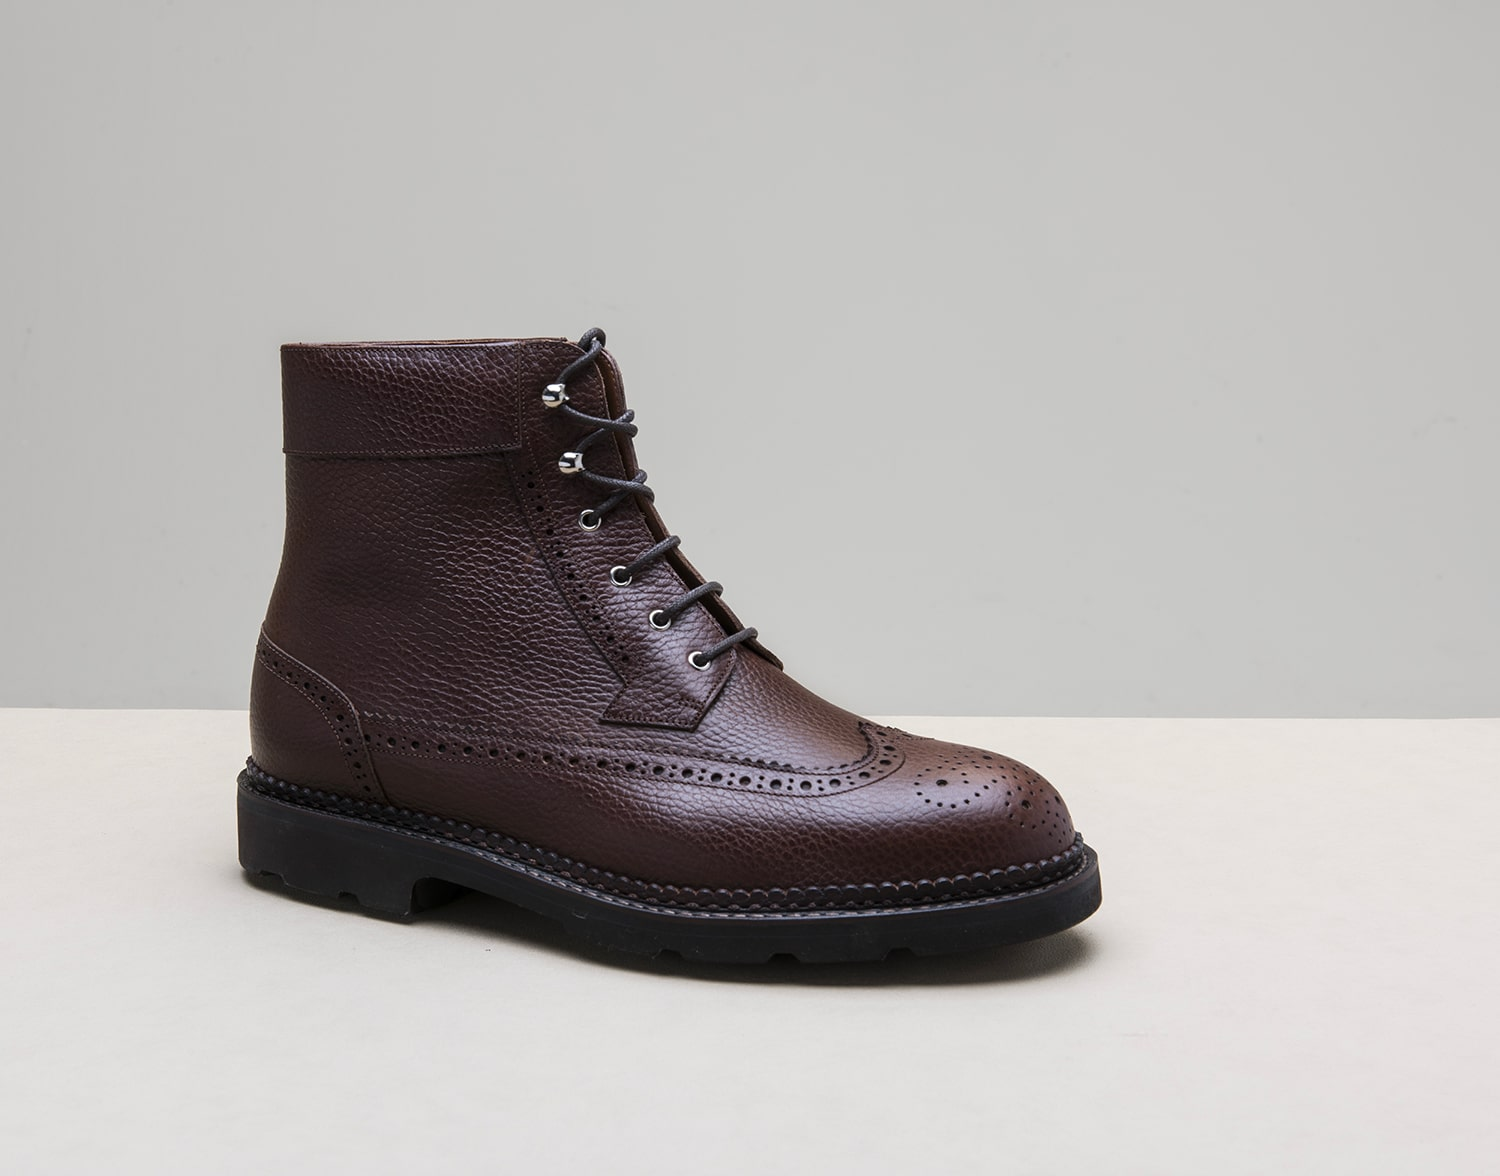 workbootmg - Work boots, City Boots & chukkas : 6 nouvelles versions